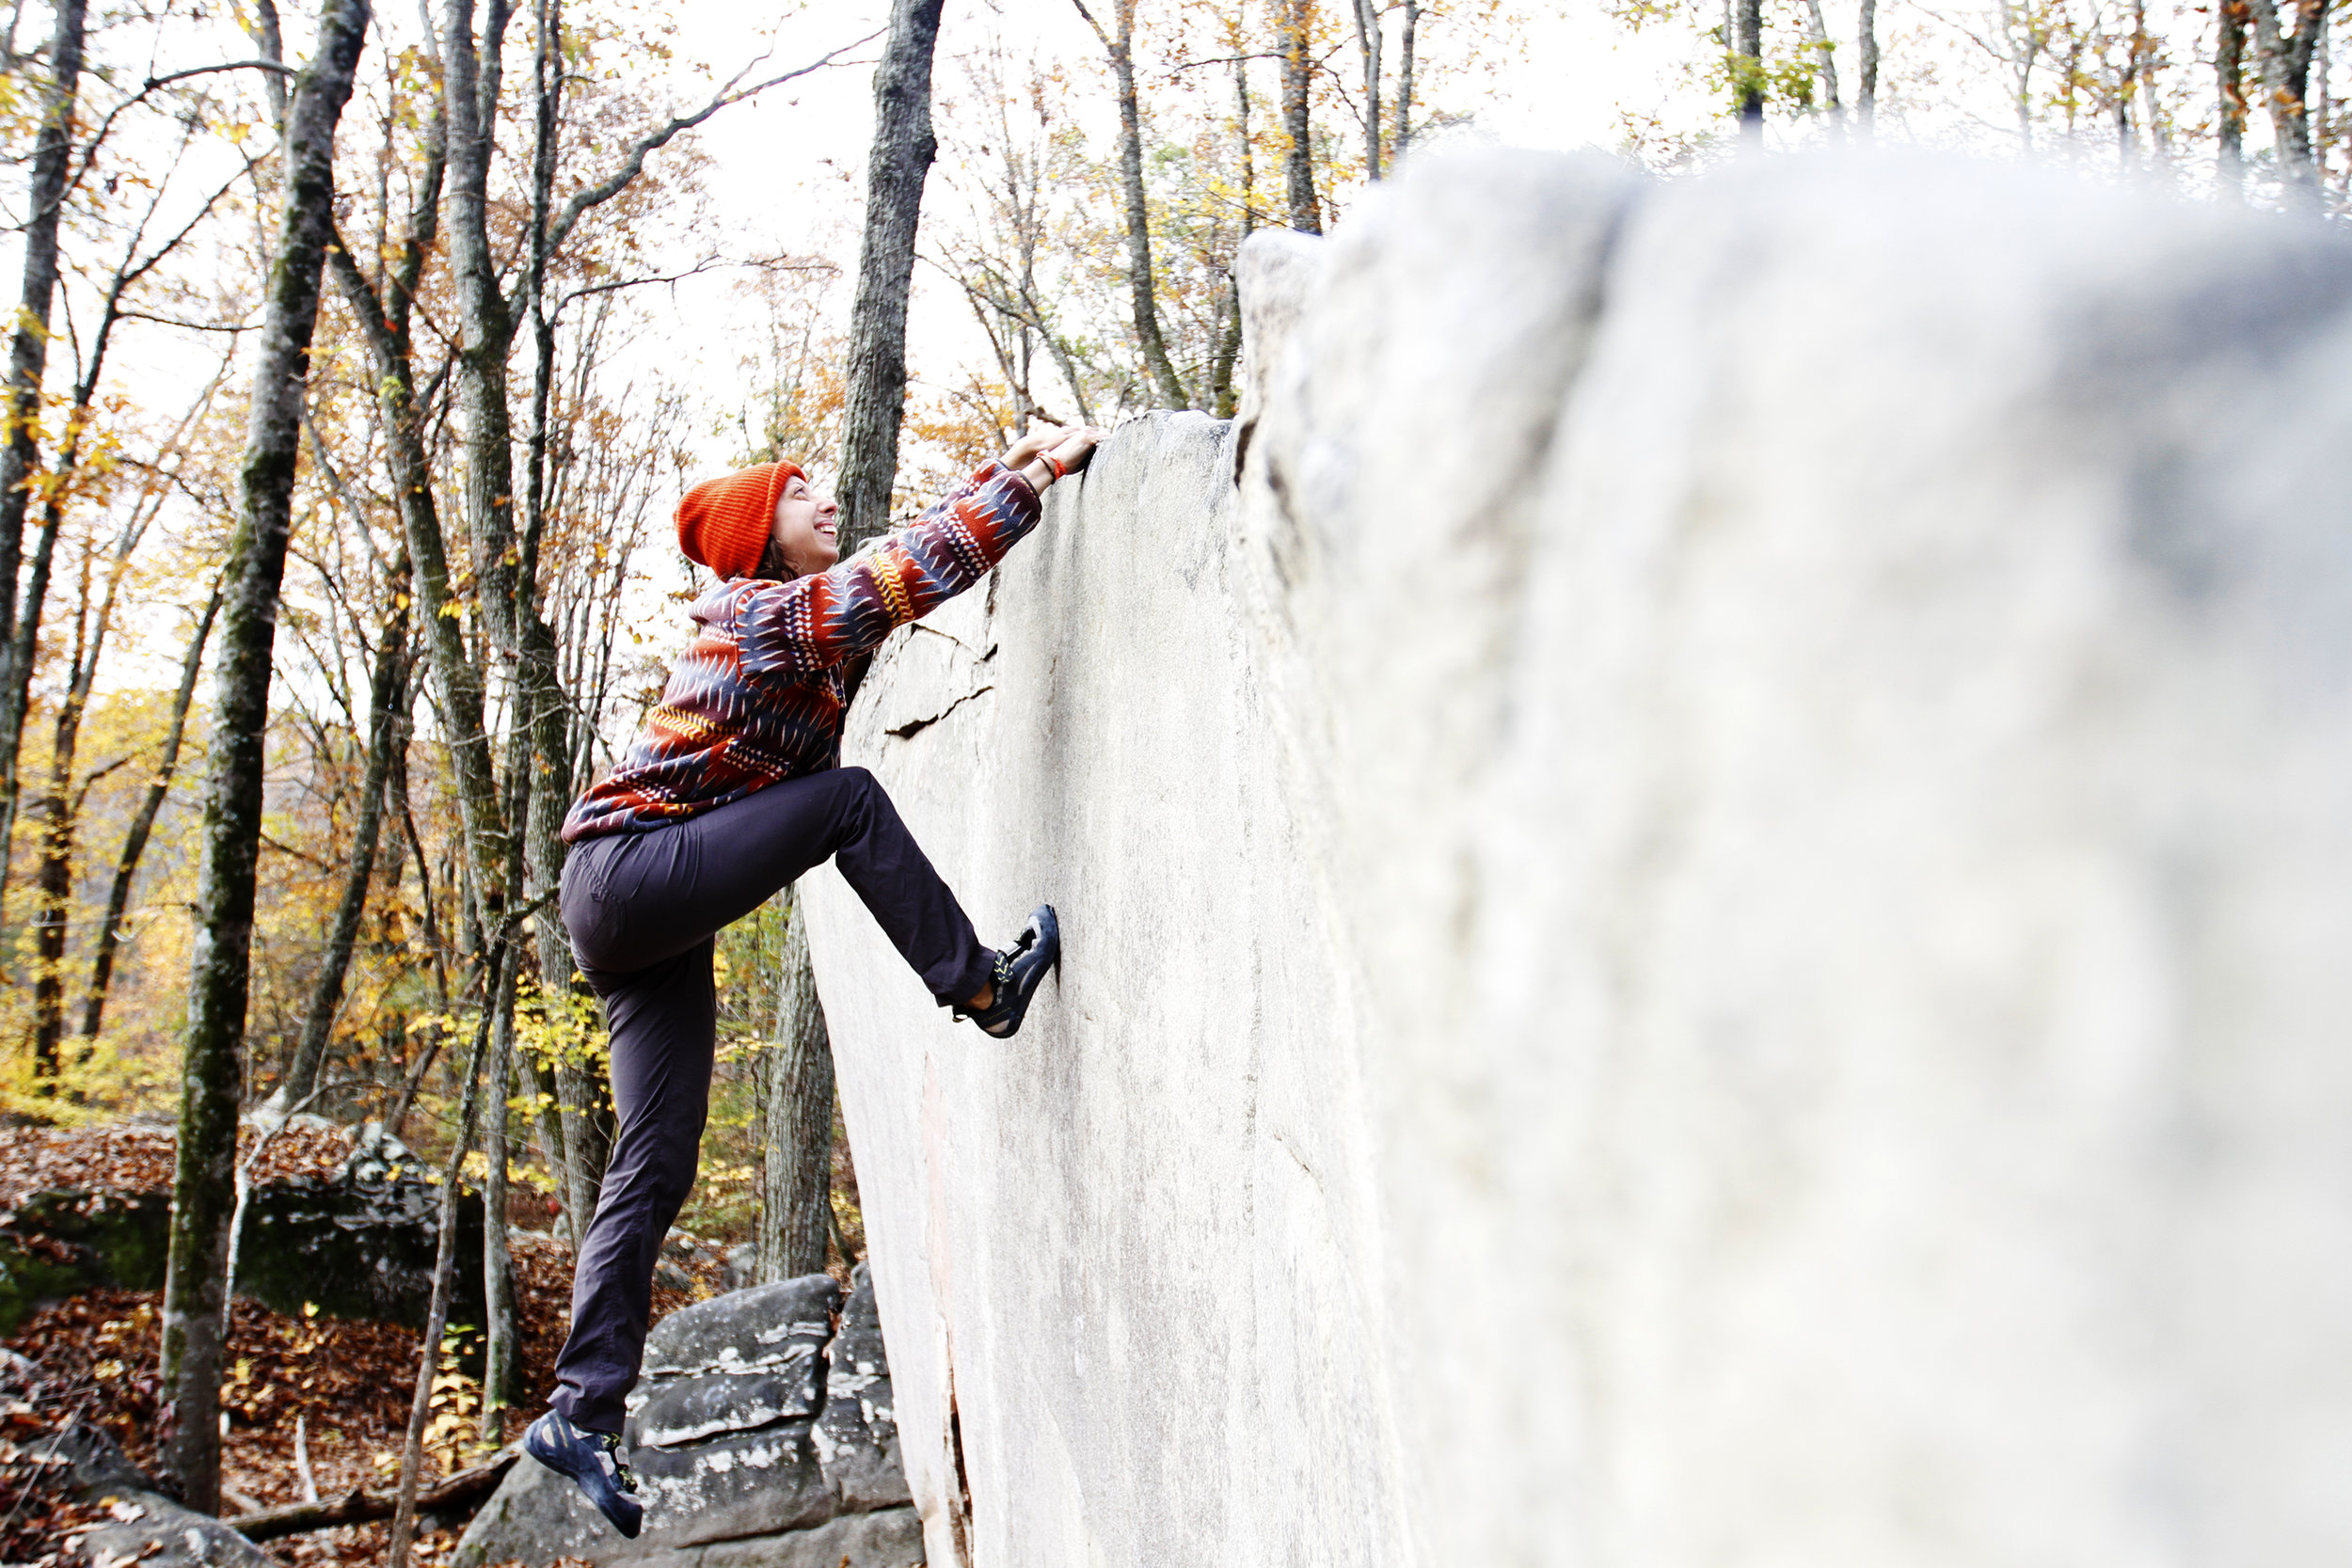 T Money laughs her way up Mizzen Mast (V1) at Stone Fort Boulders in Chattanooga, TN.